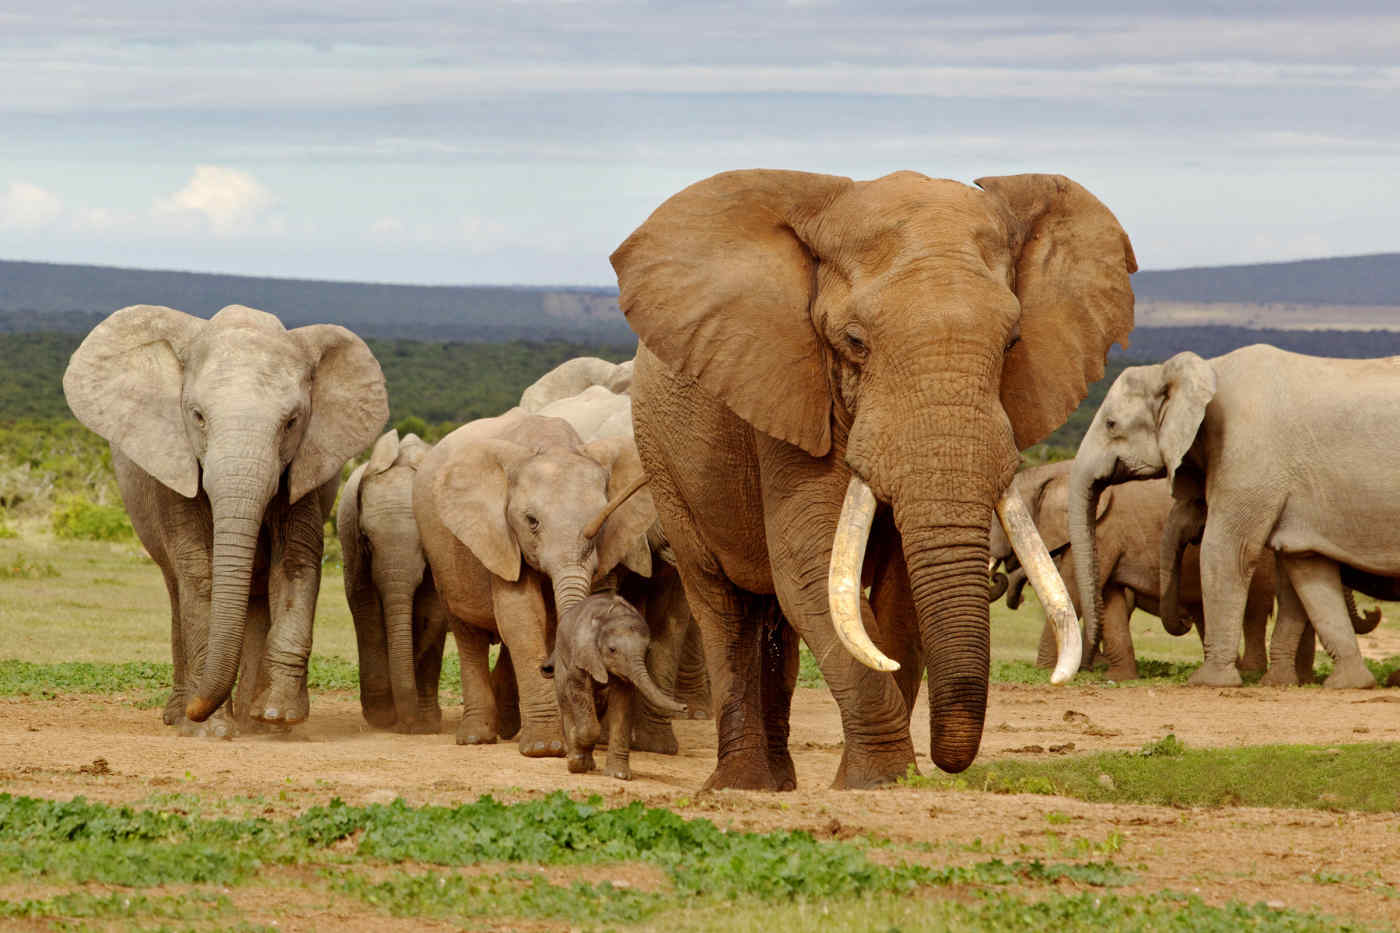 Elephants on safari in South Africa